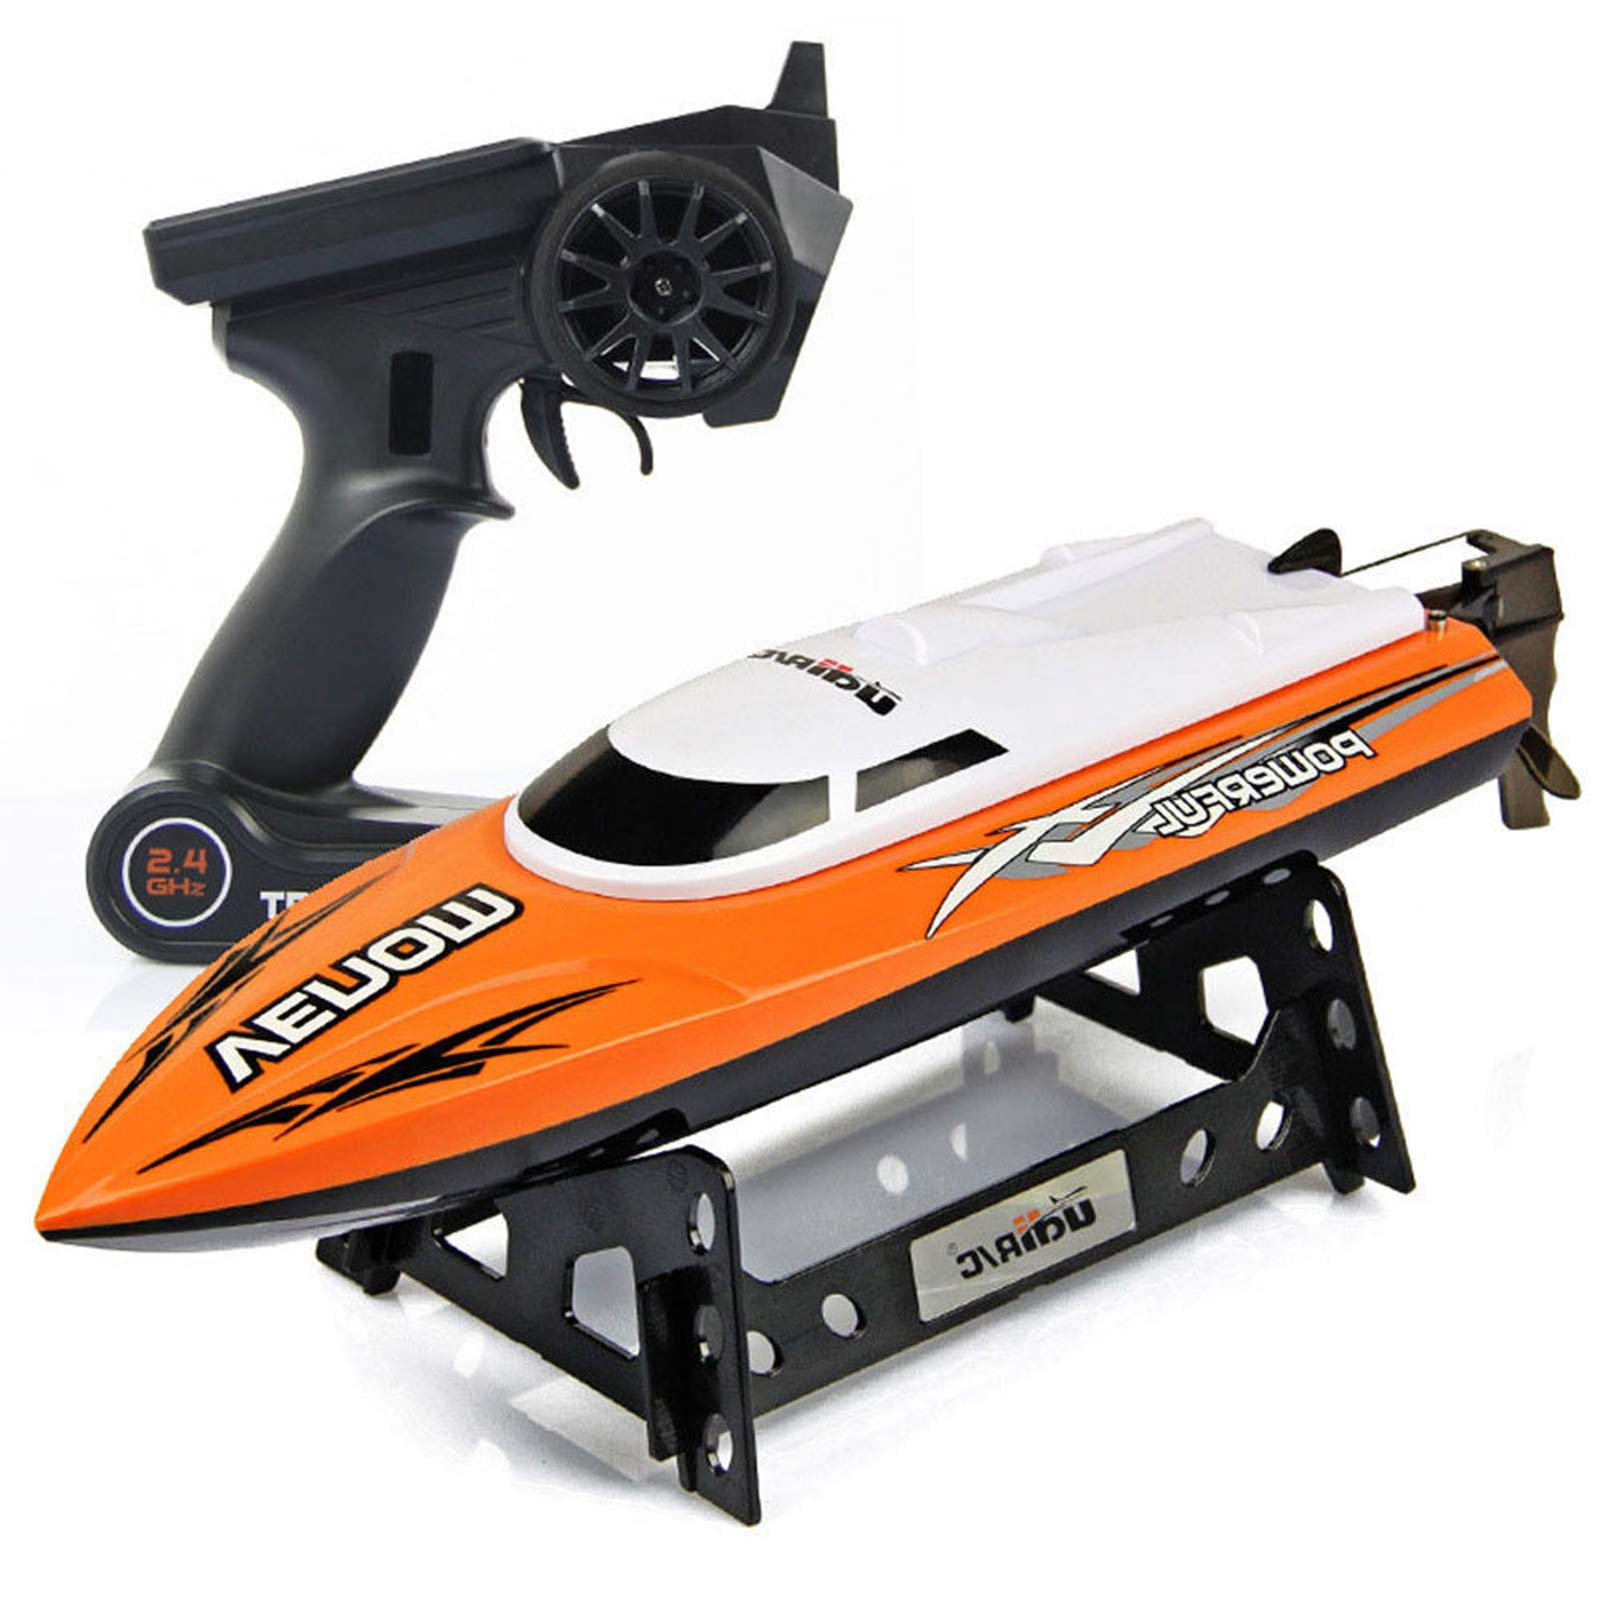 Cheerwing Racing Boat Adults Electronic